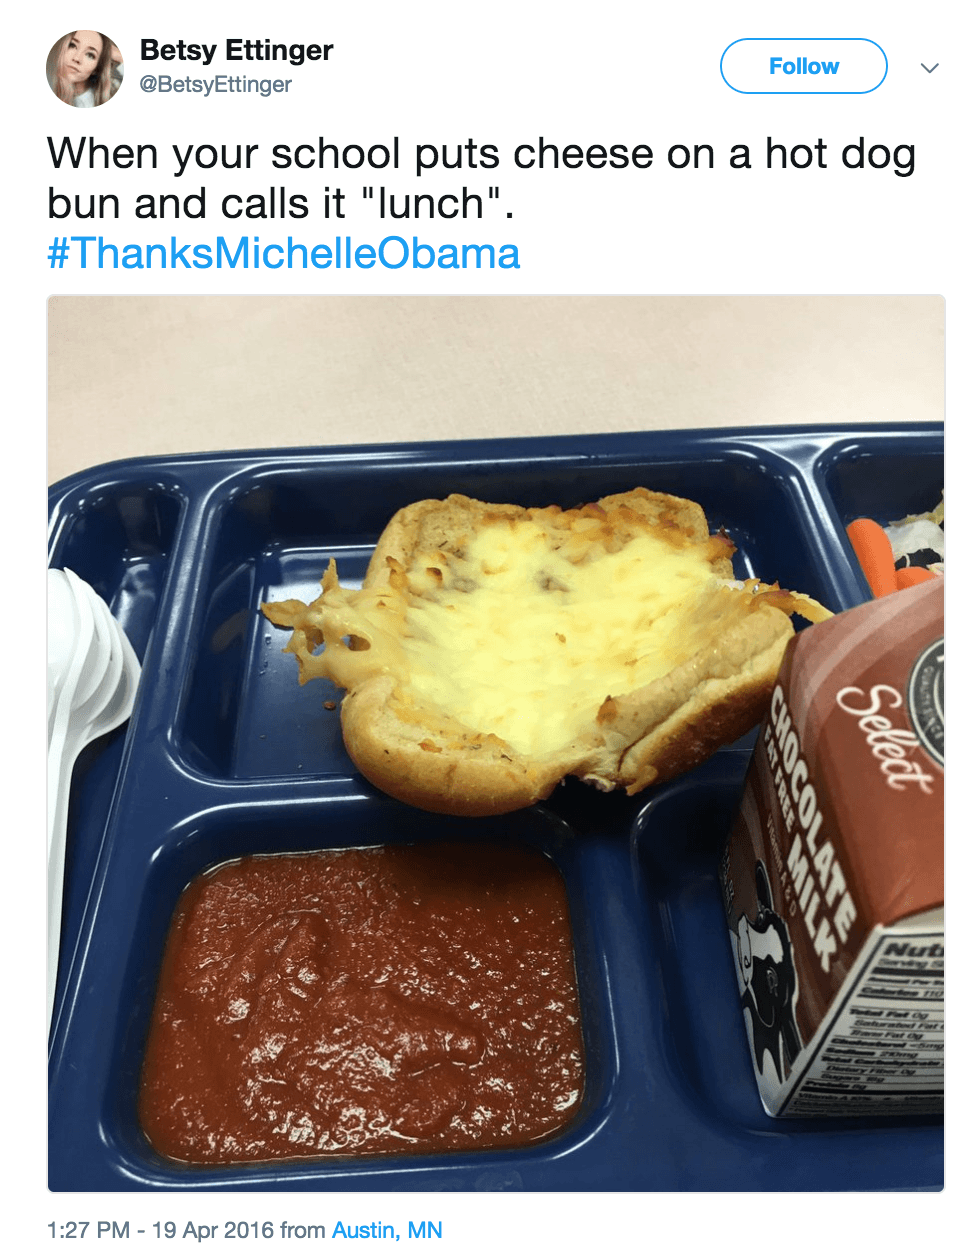 School lunch hotdog bun cheese